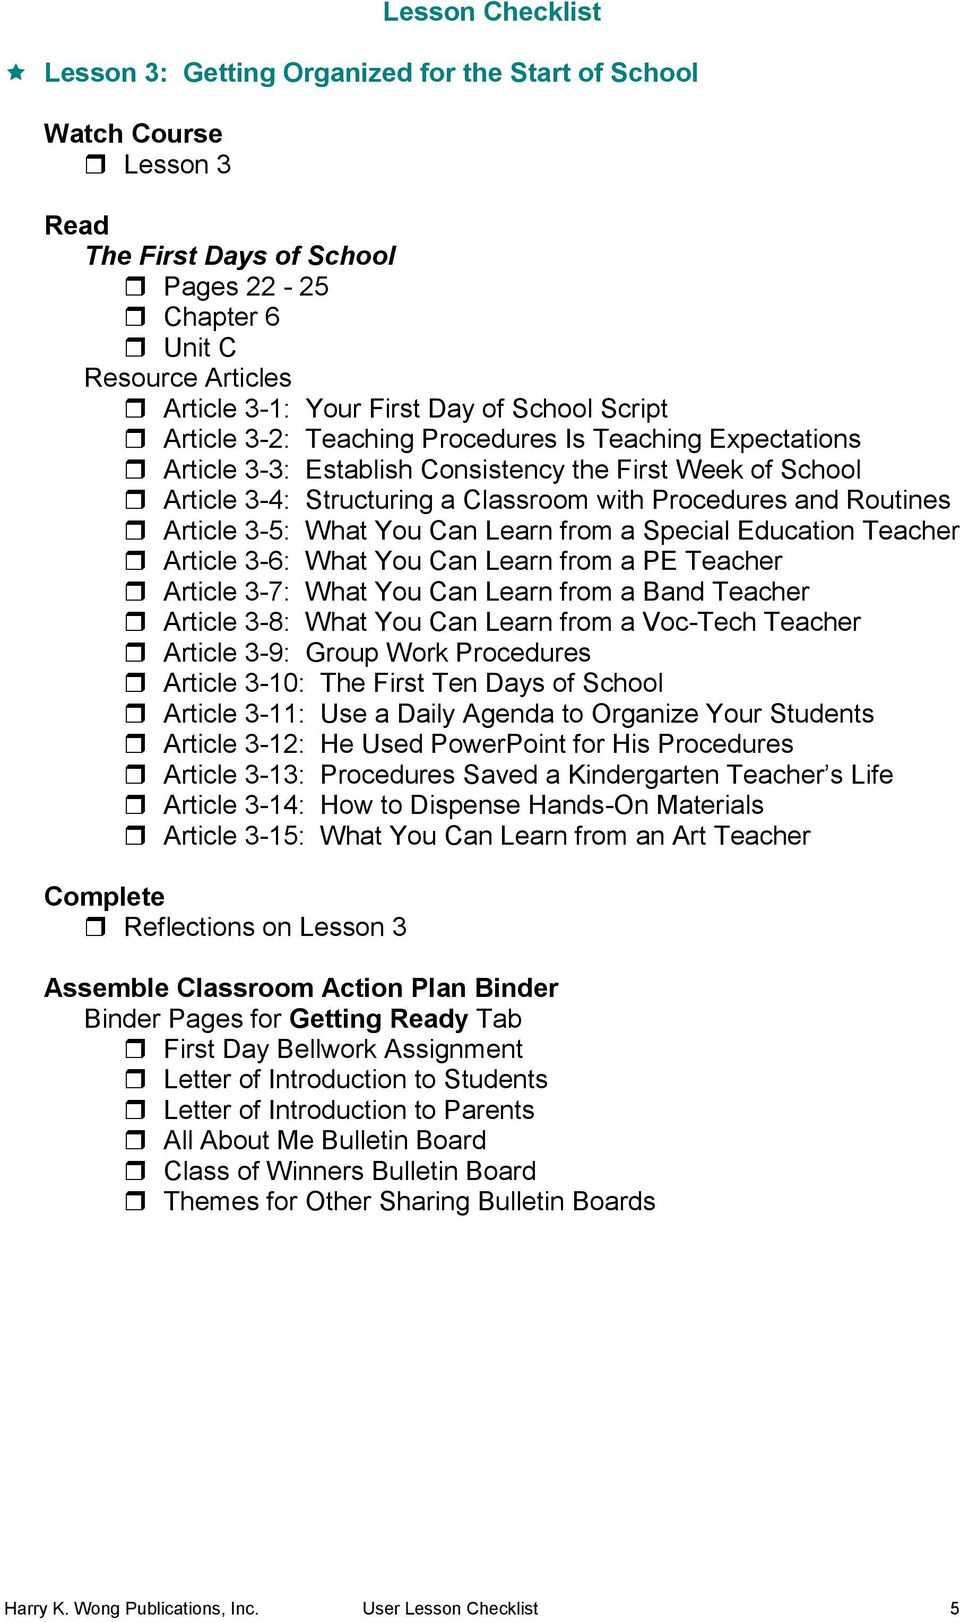 3-6: What You Can Learn from a PE Teacher Article 3-7: What You Can Learn from a Band Teacher Article 3-8: What You Can Learn from a Voc-Tech Teacher Article 3-9: Group Work Procedures Article 3-10: